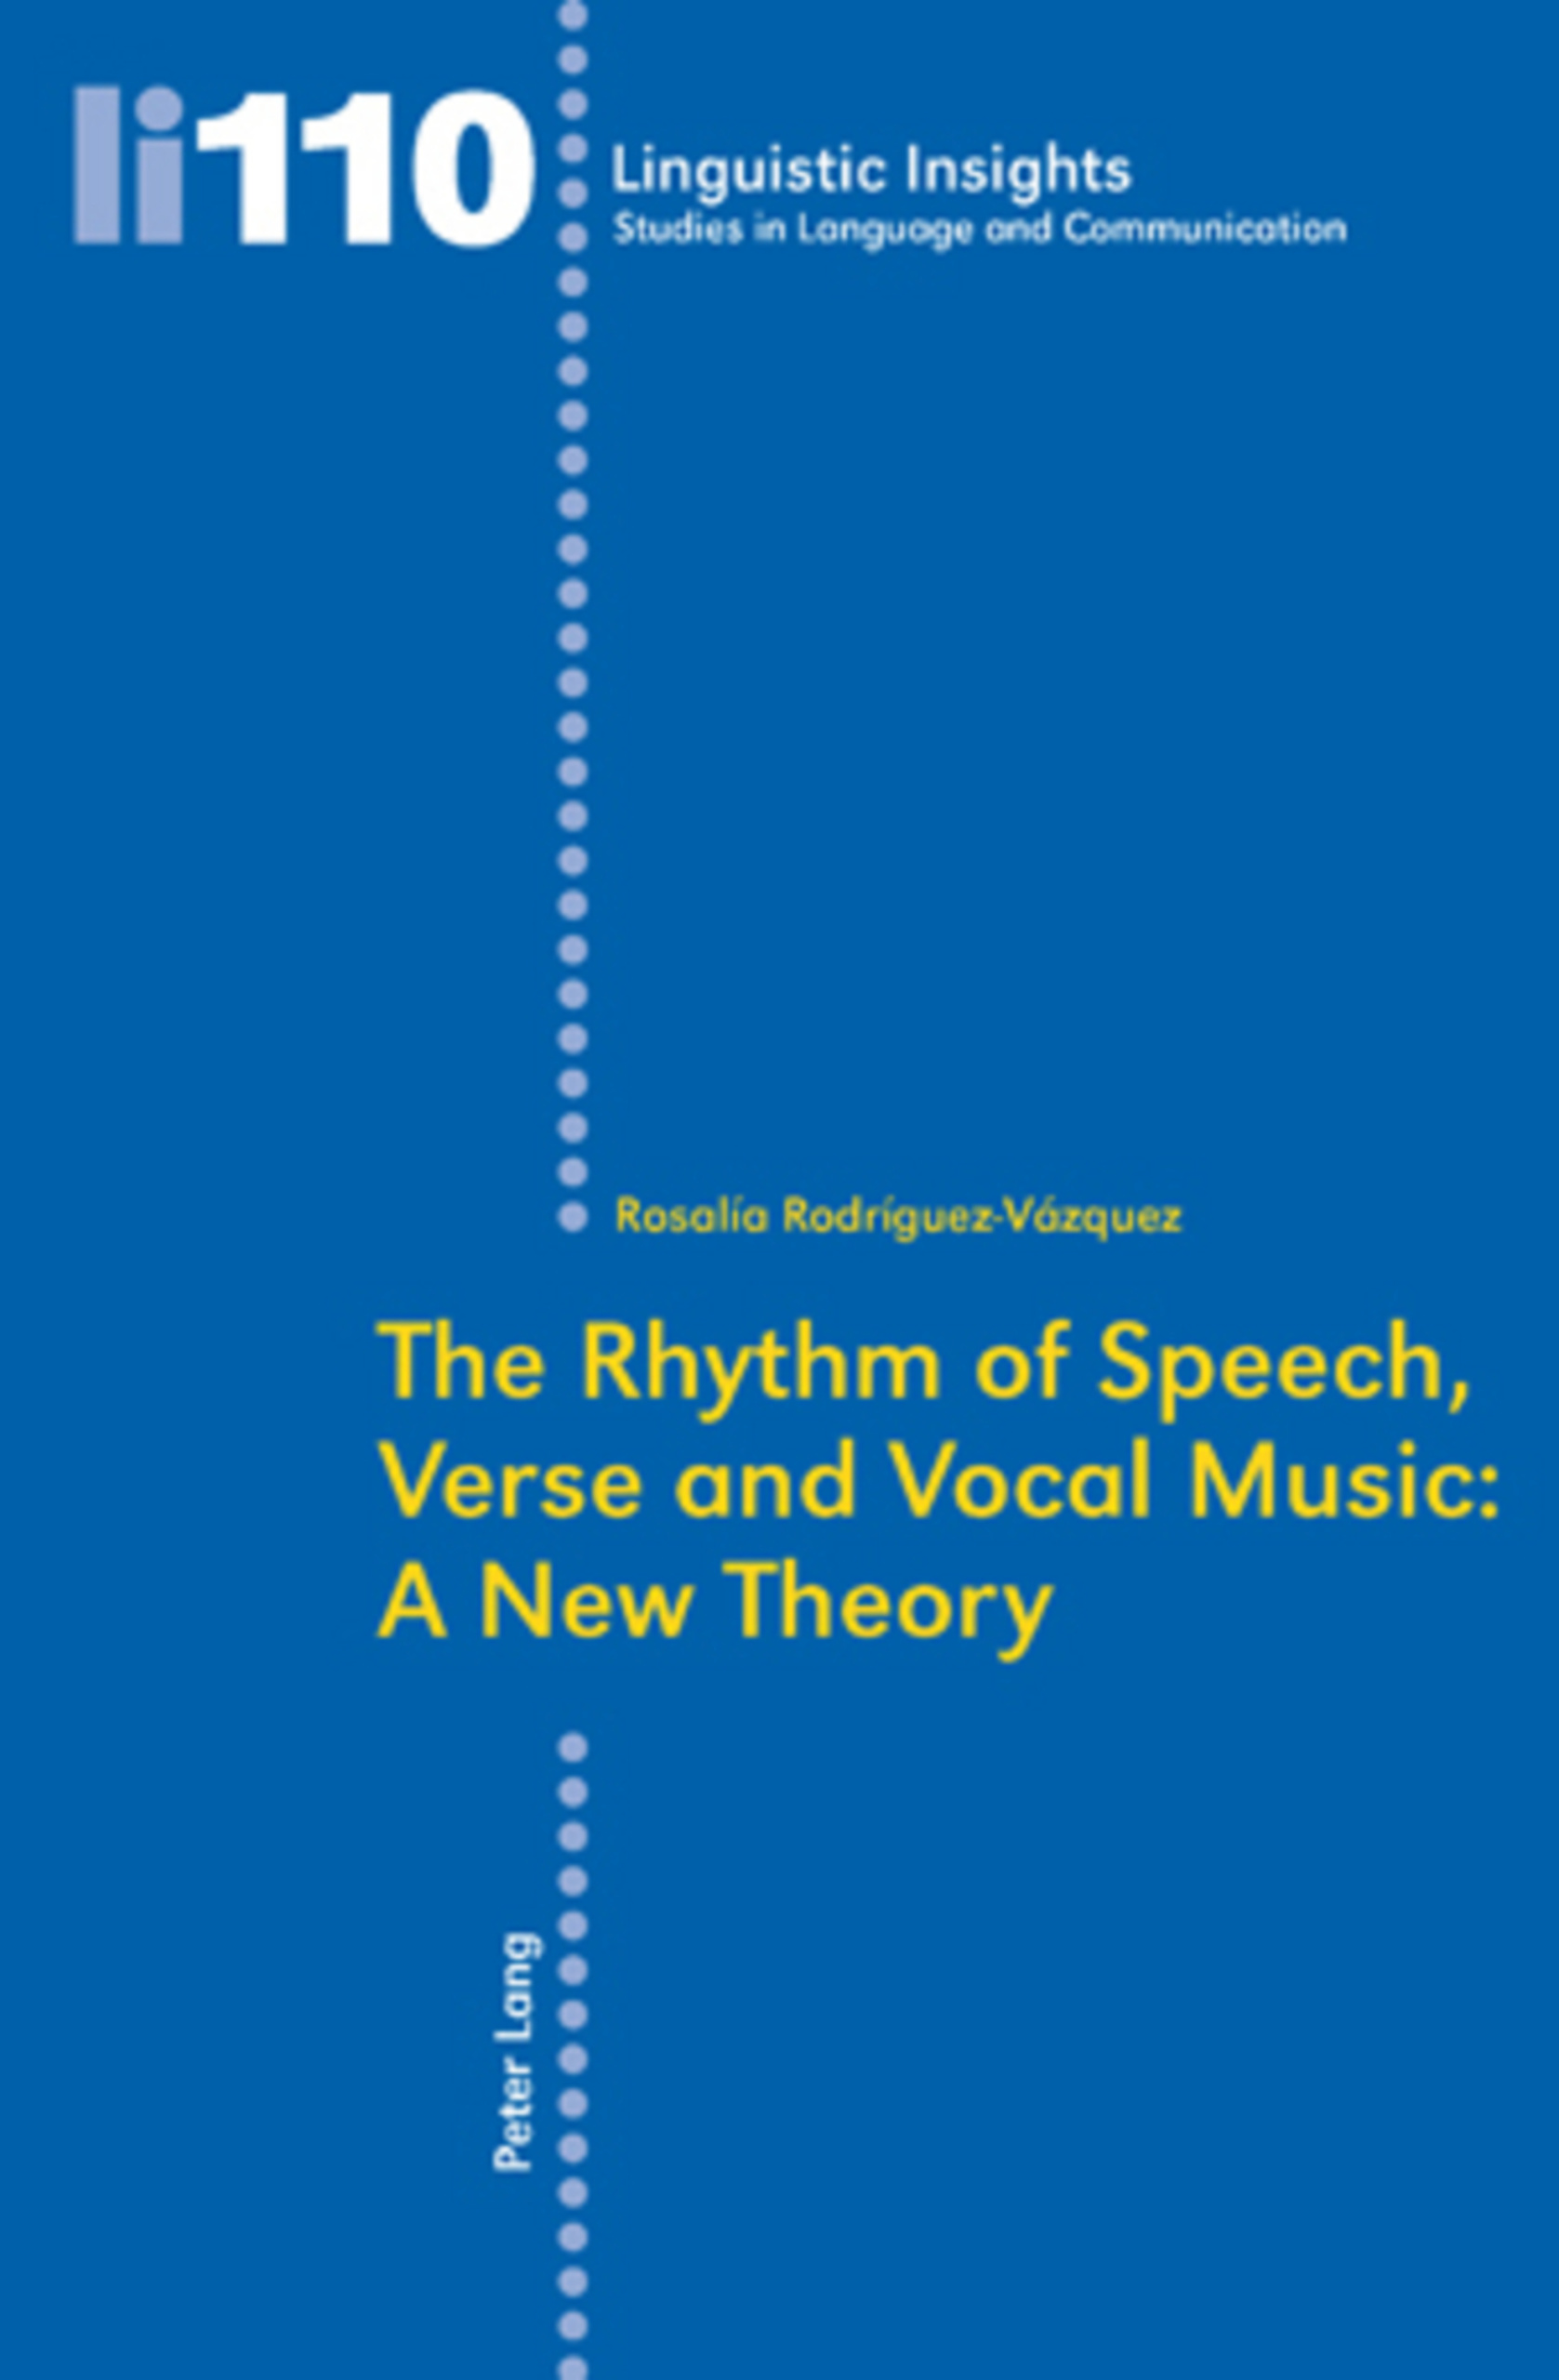 Title: The Rhythm of Speech, Verse and Vocal Music: A New Theory